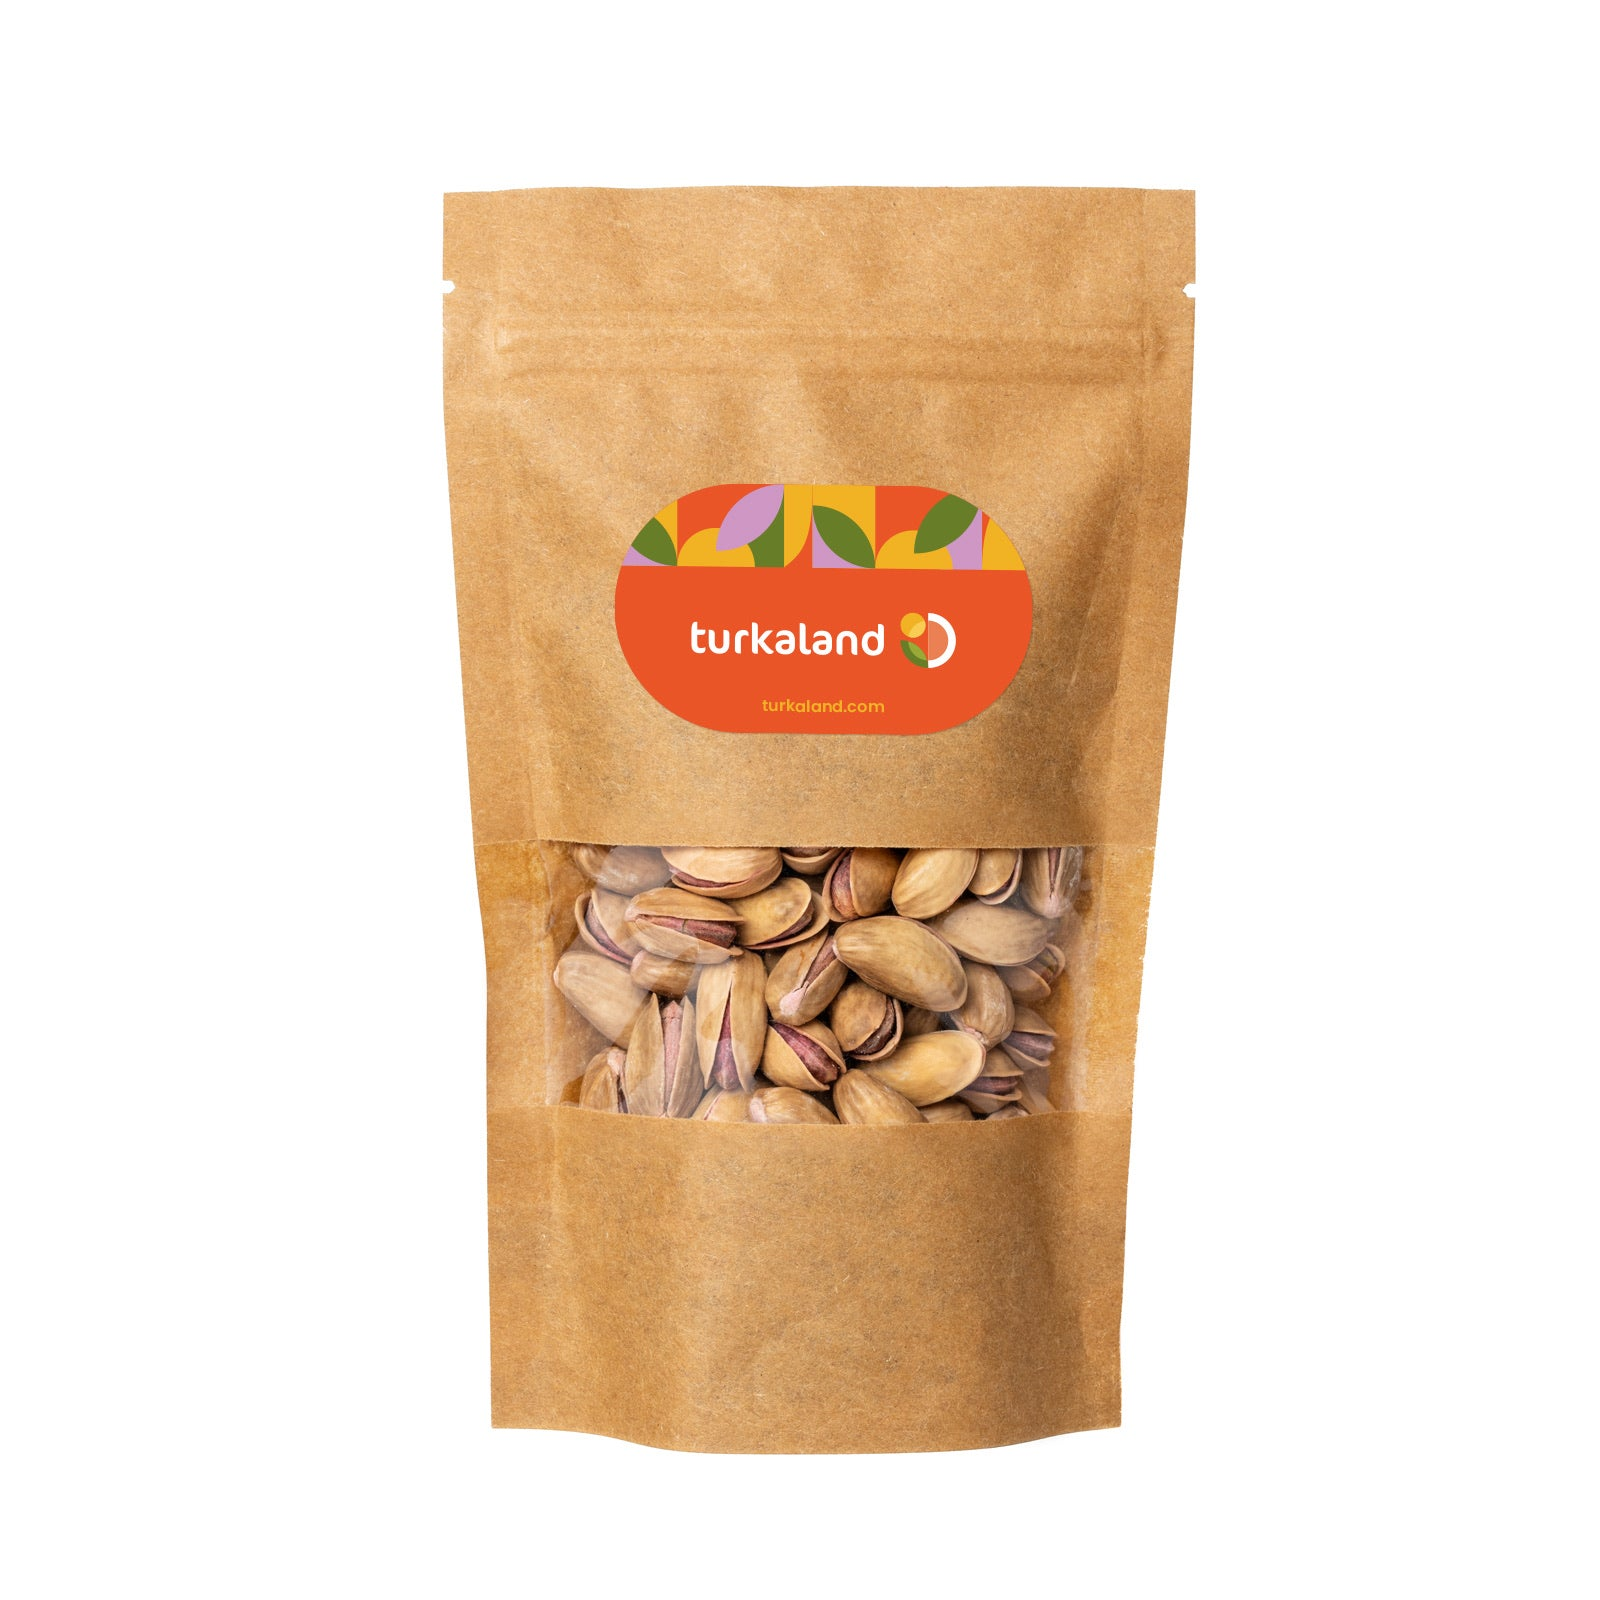 Antep Pistachio Inshell Roasted & Salted 16 oz